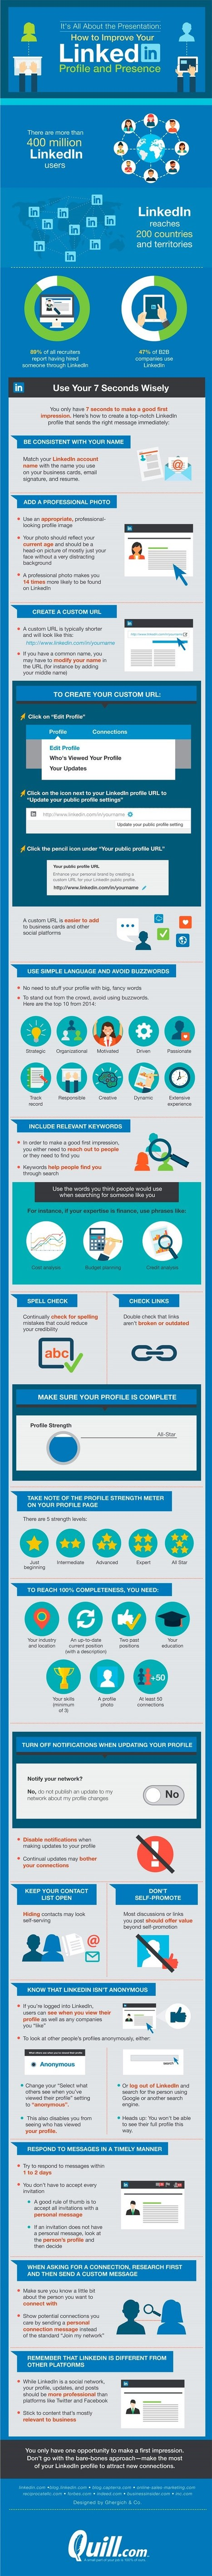 How to Improve Your LinkedIn Profile and Presence #Infographic | Technology and Education | Scoop.it